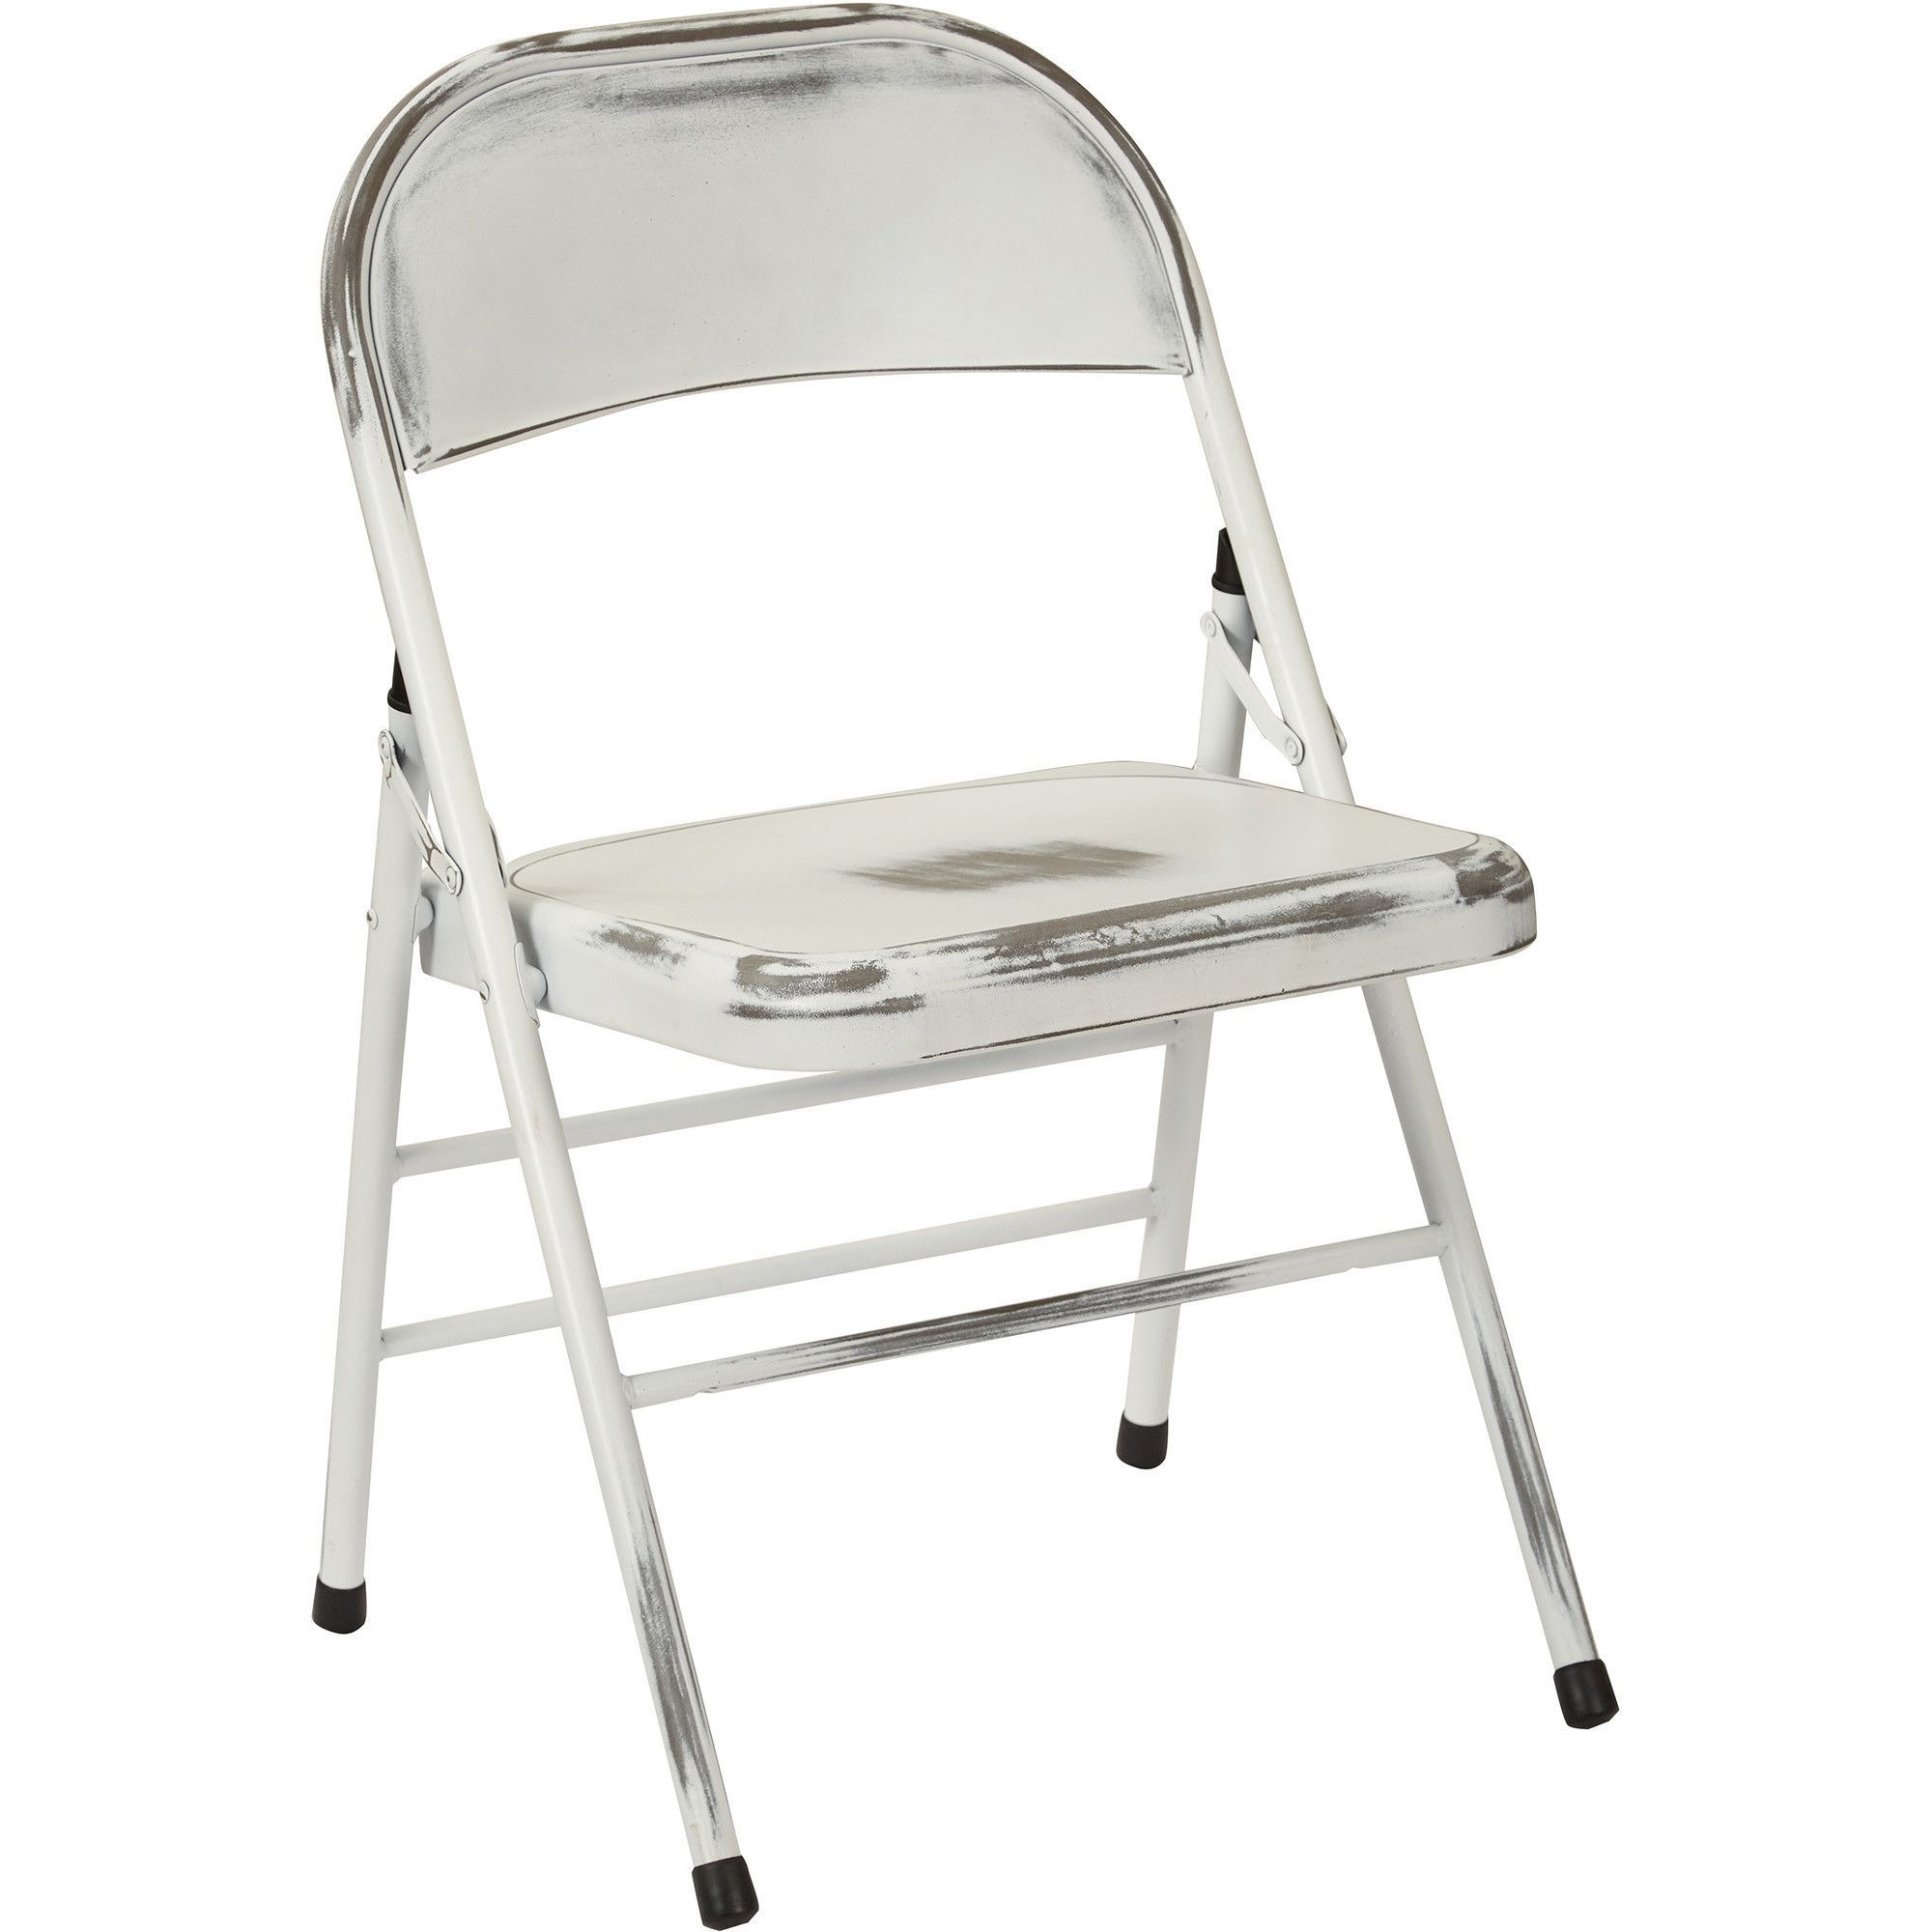 OSP Bristow Metal Folding Chairs Antique White Distressed Finish